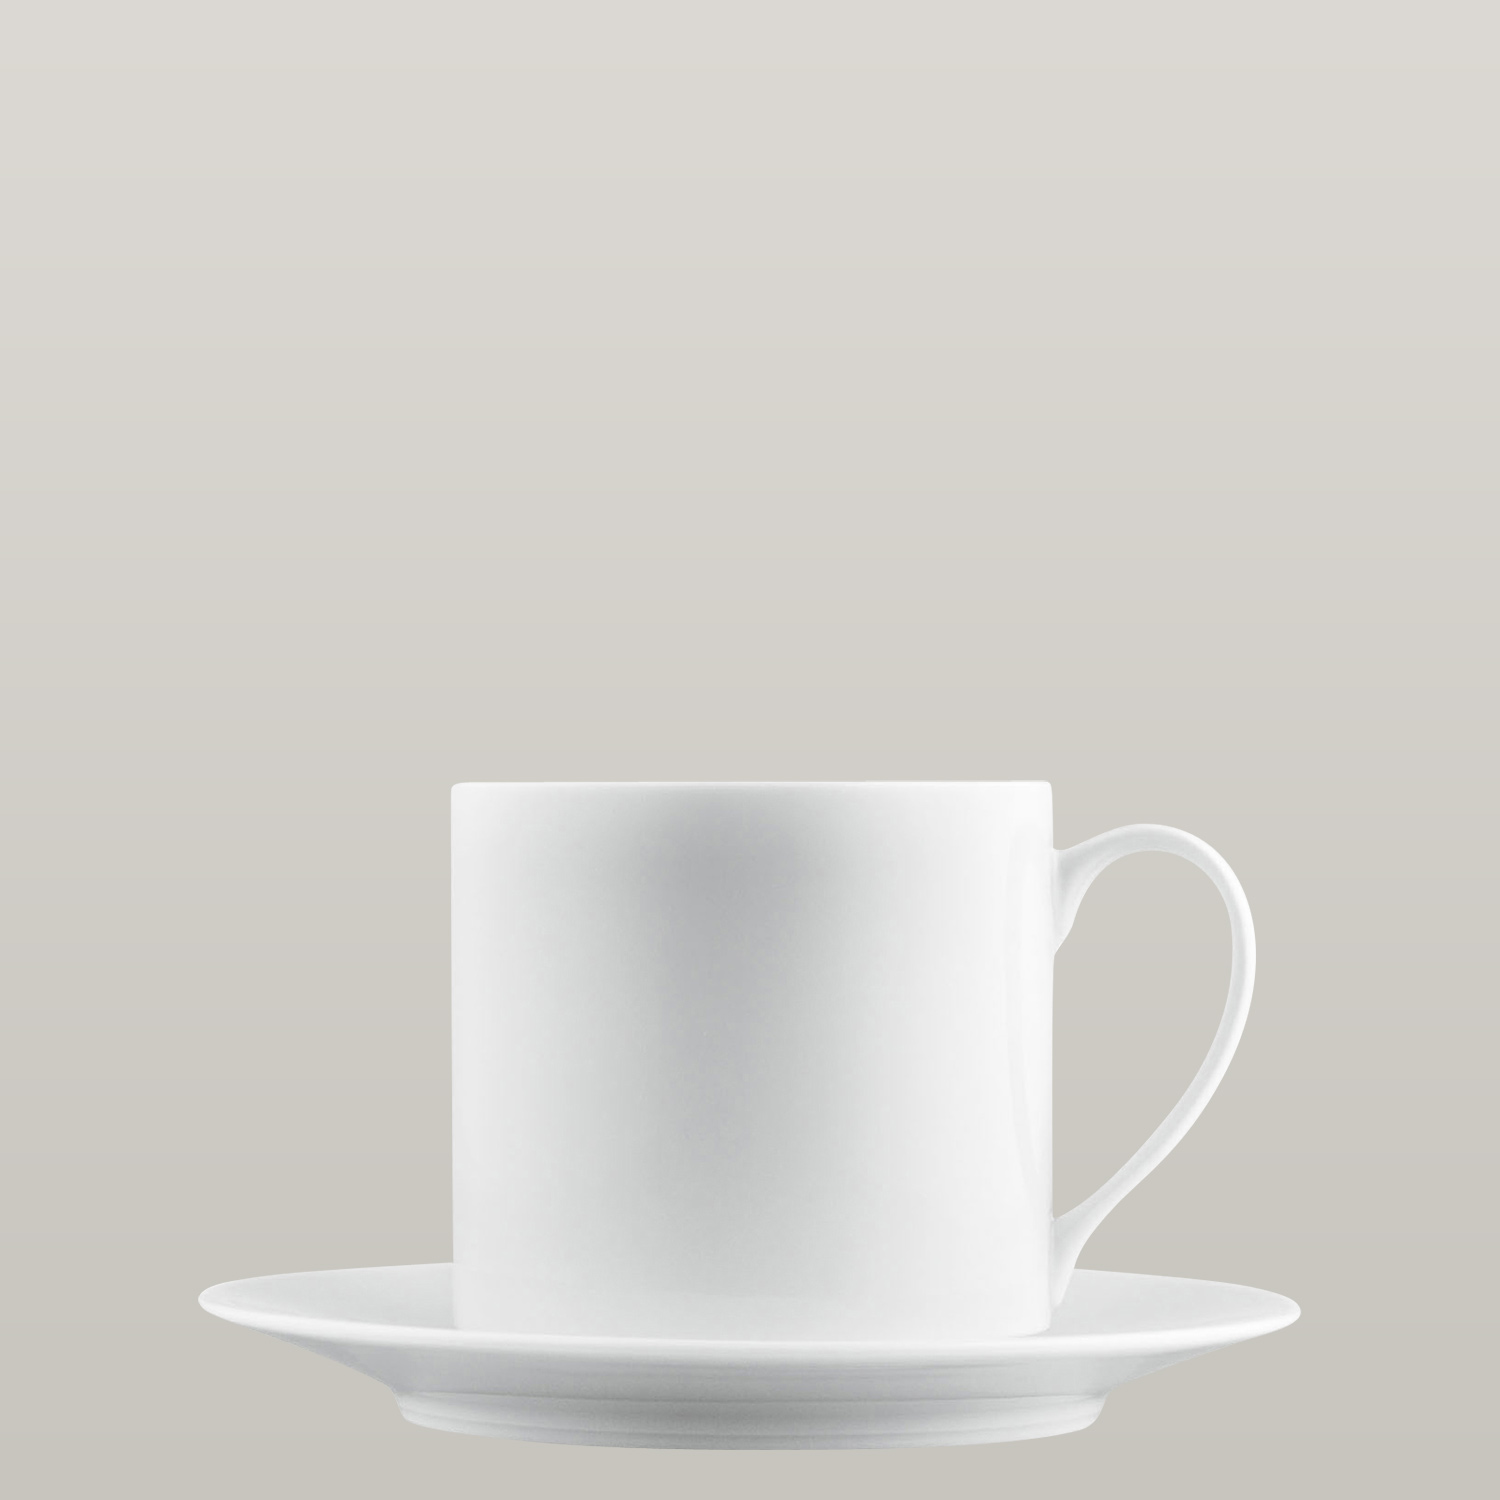 Coffee cup, Saucer